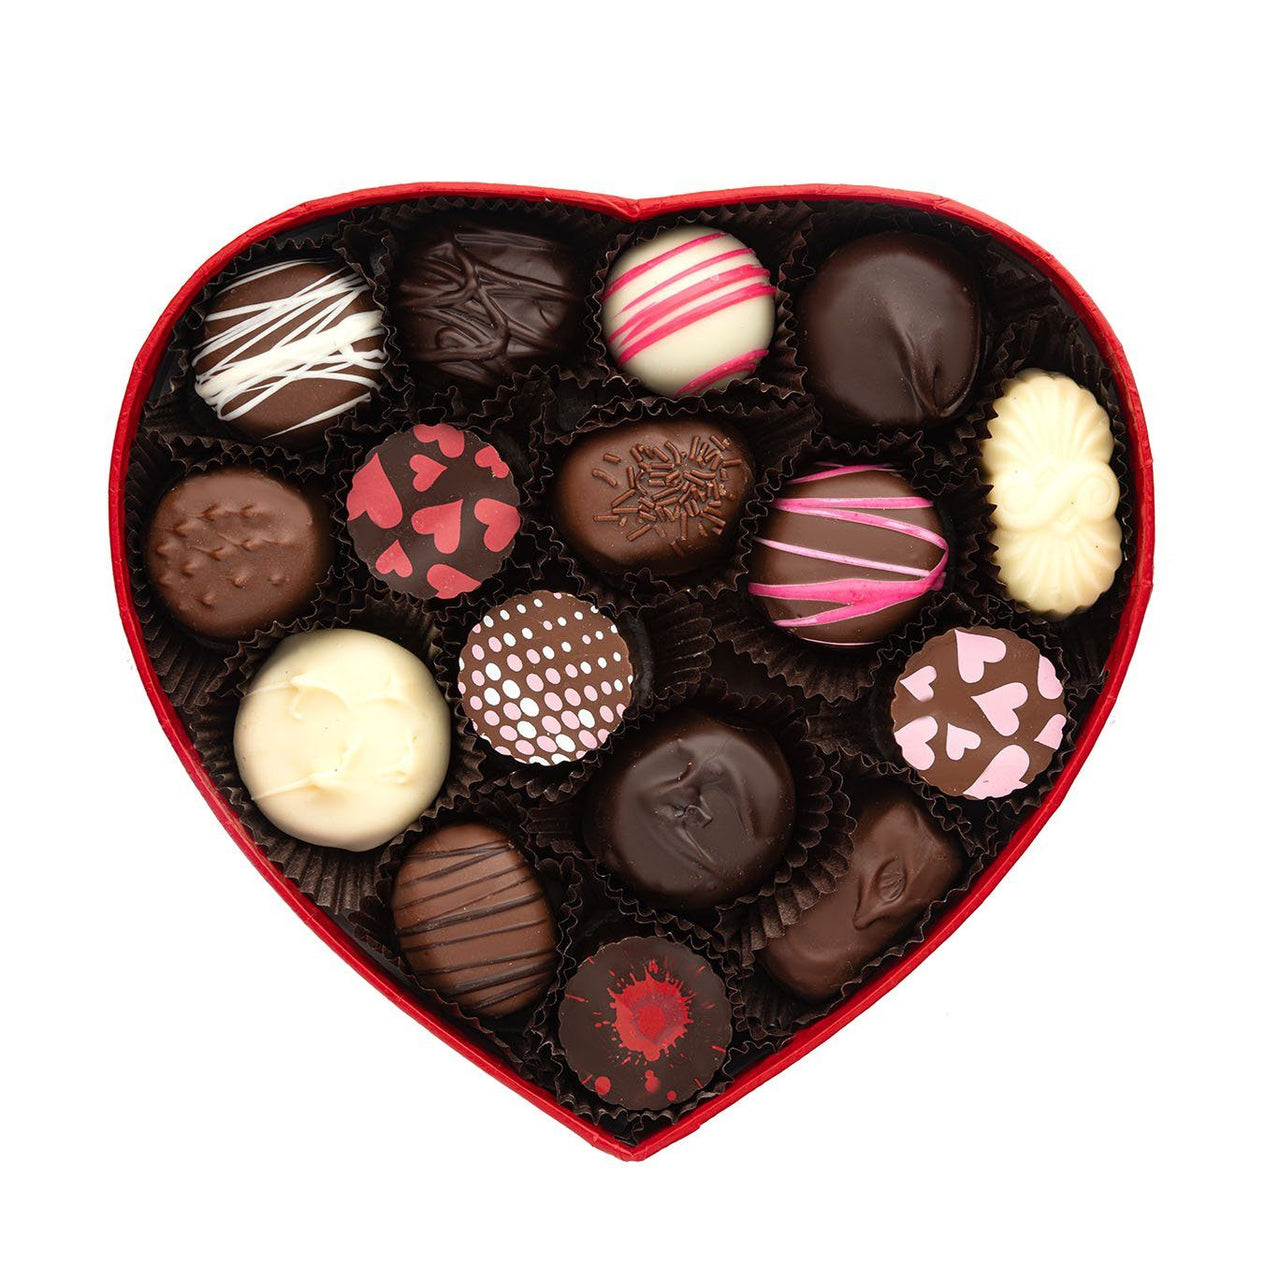 Valentine Heart Chocolate Assortment (4392217739379) (4654196916339) (4657900486771)